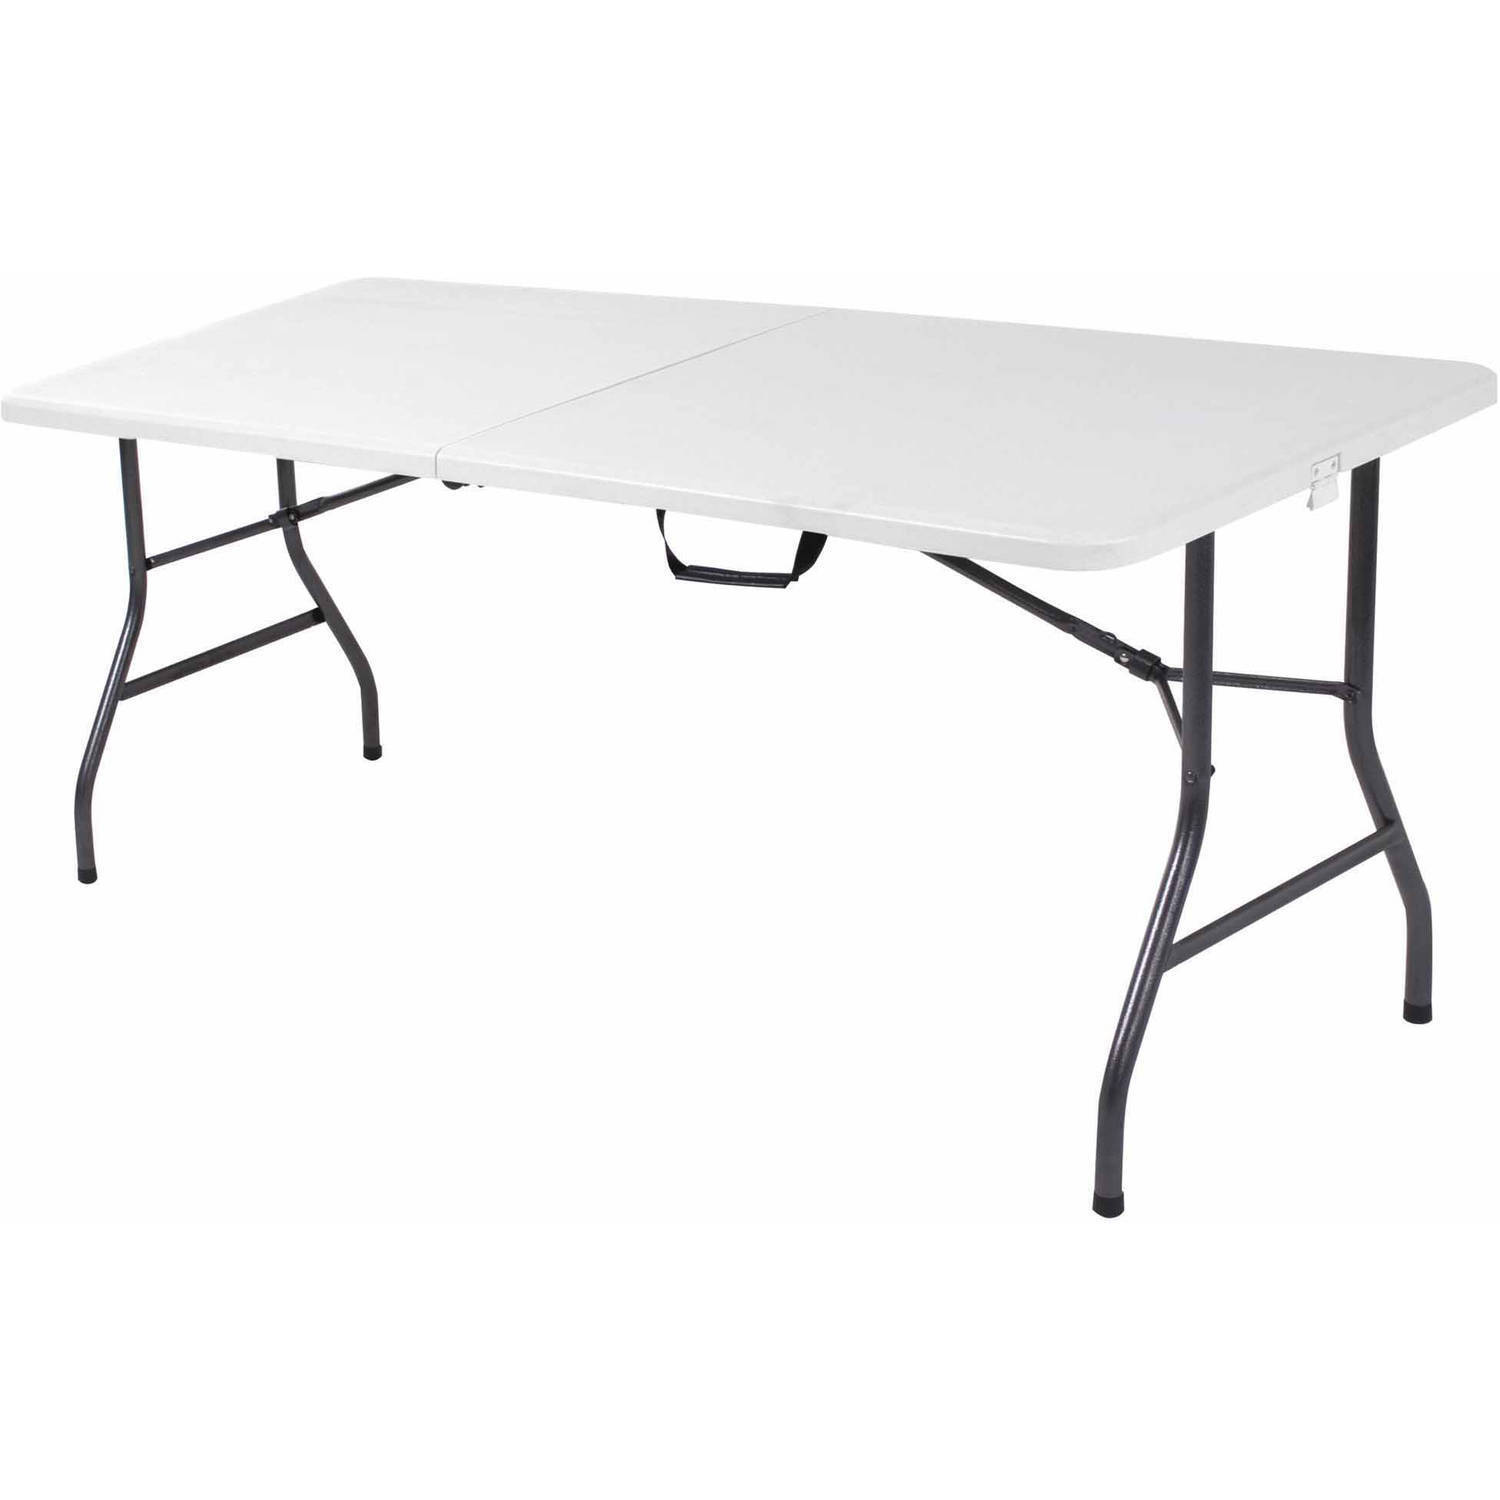 6' Centerfold Table White Folding Portable 6-Feet 6' Picnic Camping Party